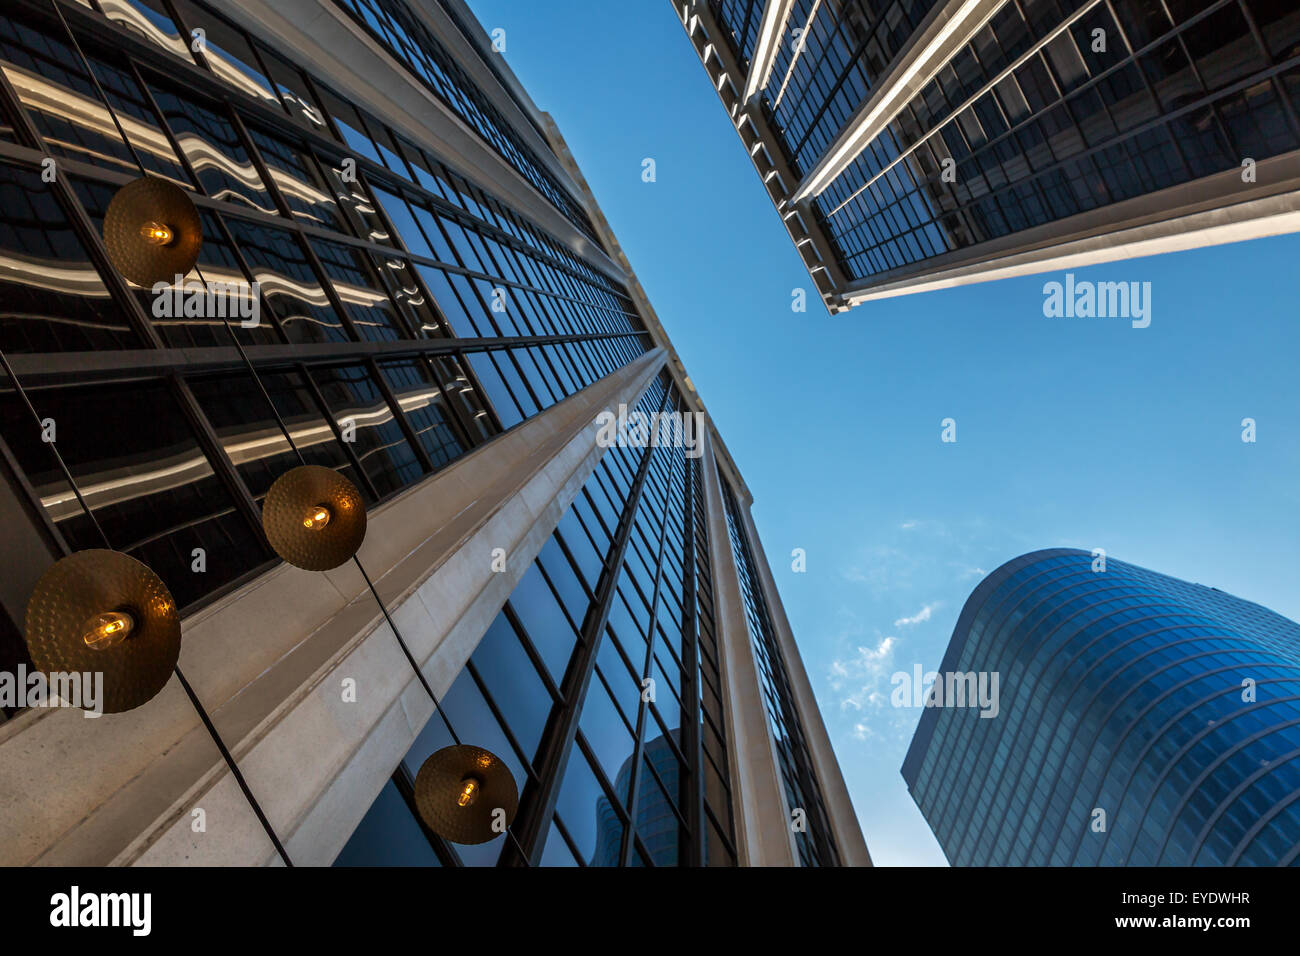 Looking up on modern building facades in Vancouver, British Columbia, Canada - Stock Image